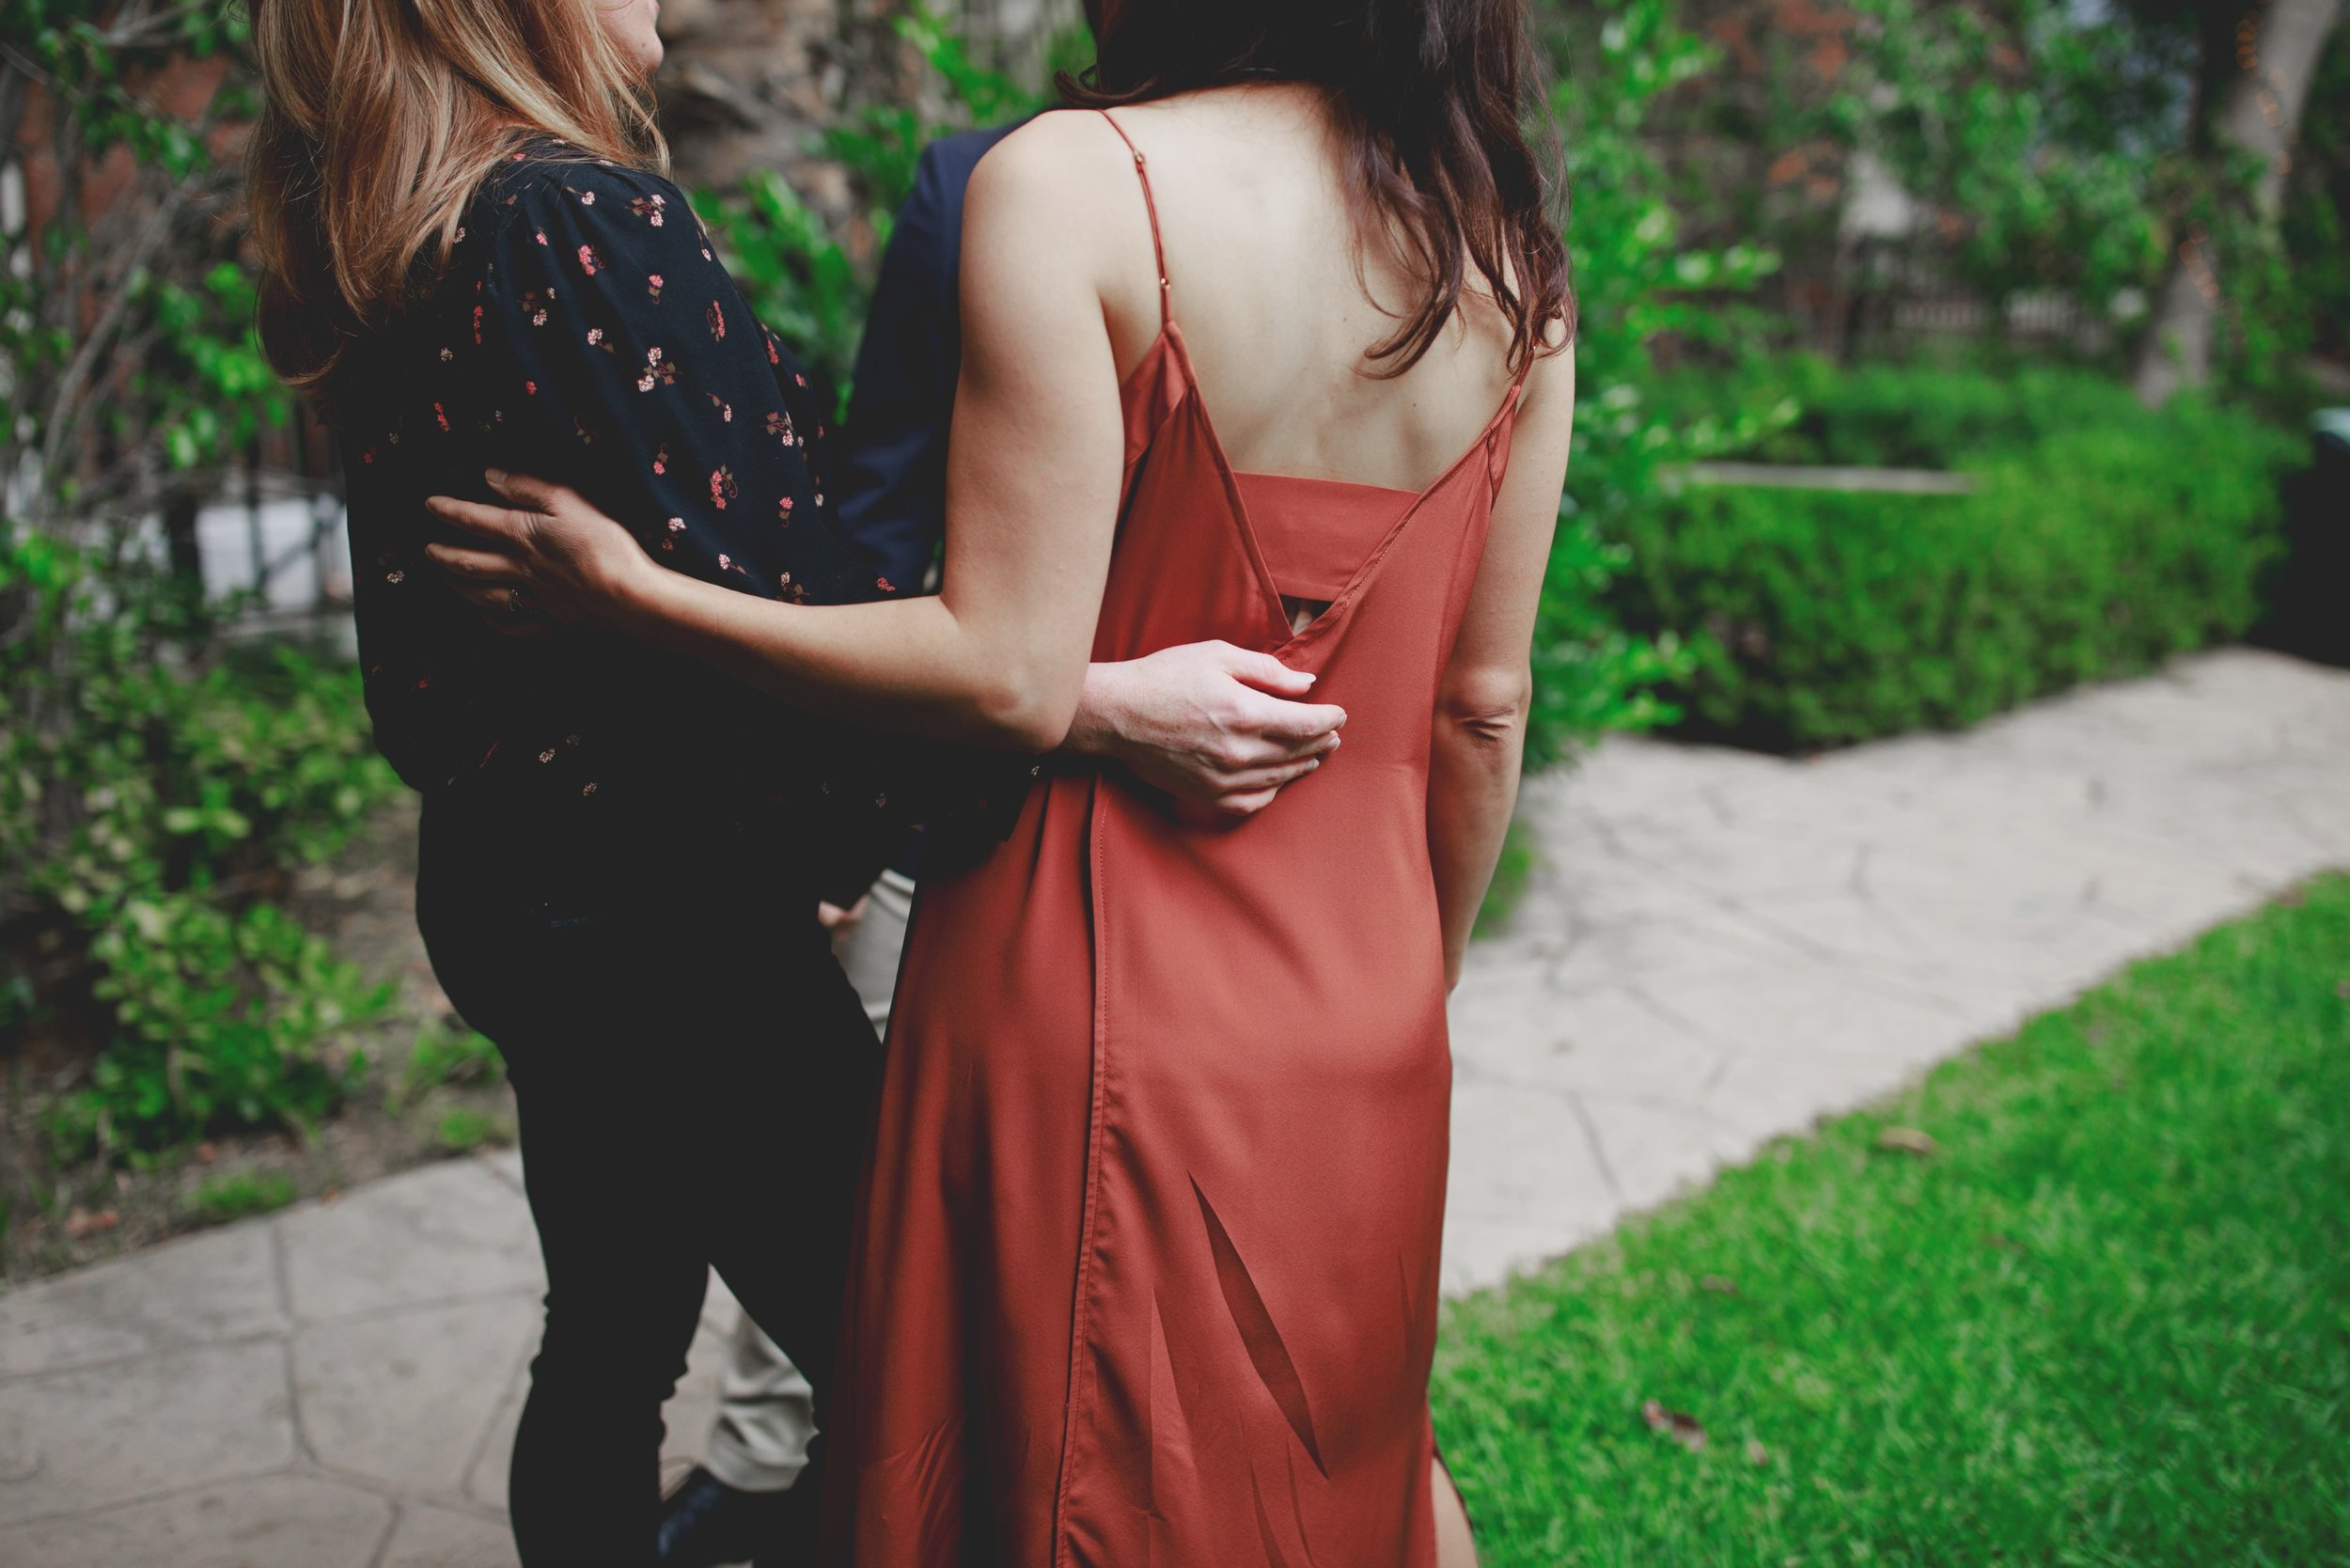 los_angeles_wedding_backyard_017.jpg